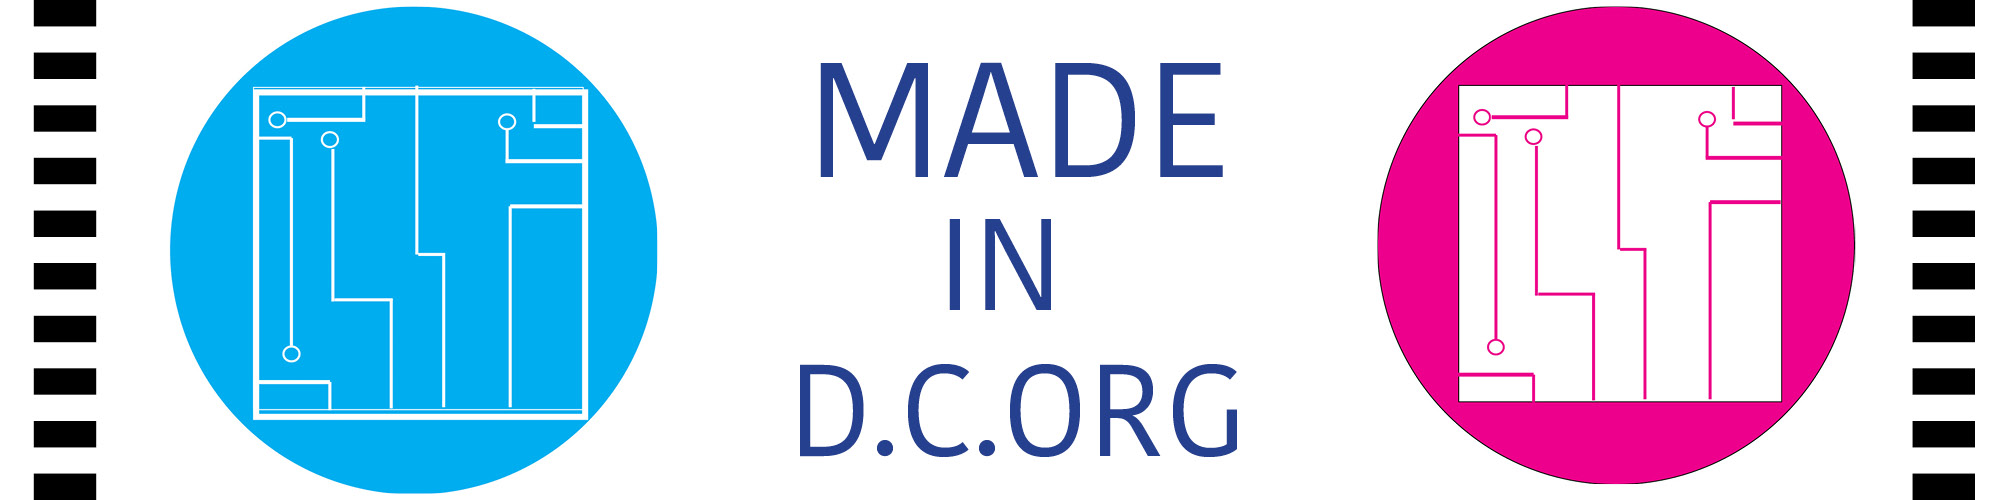 Made In D.C.